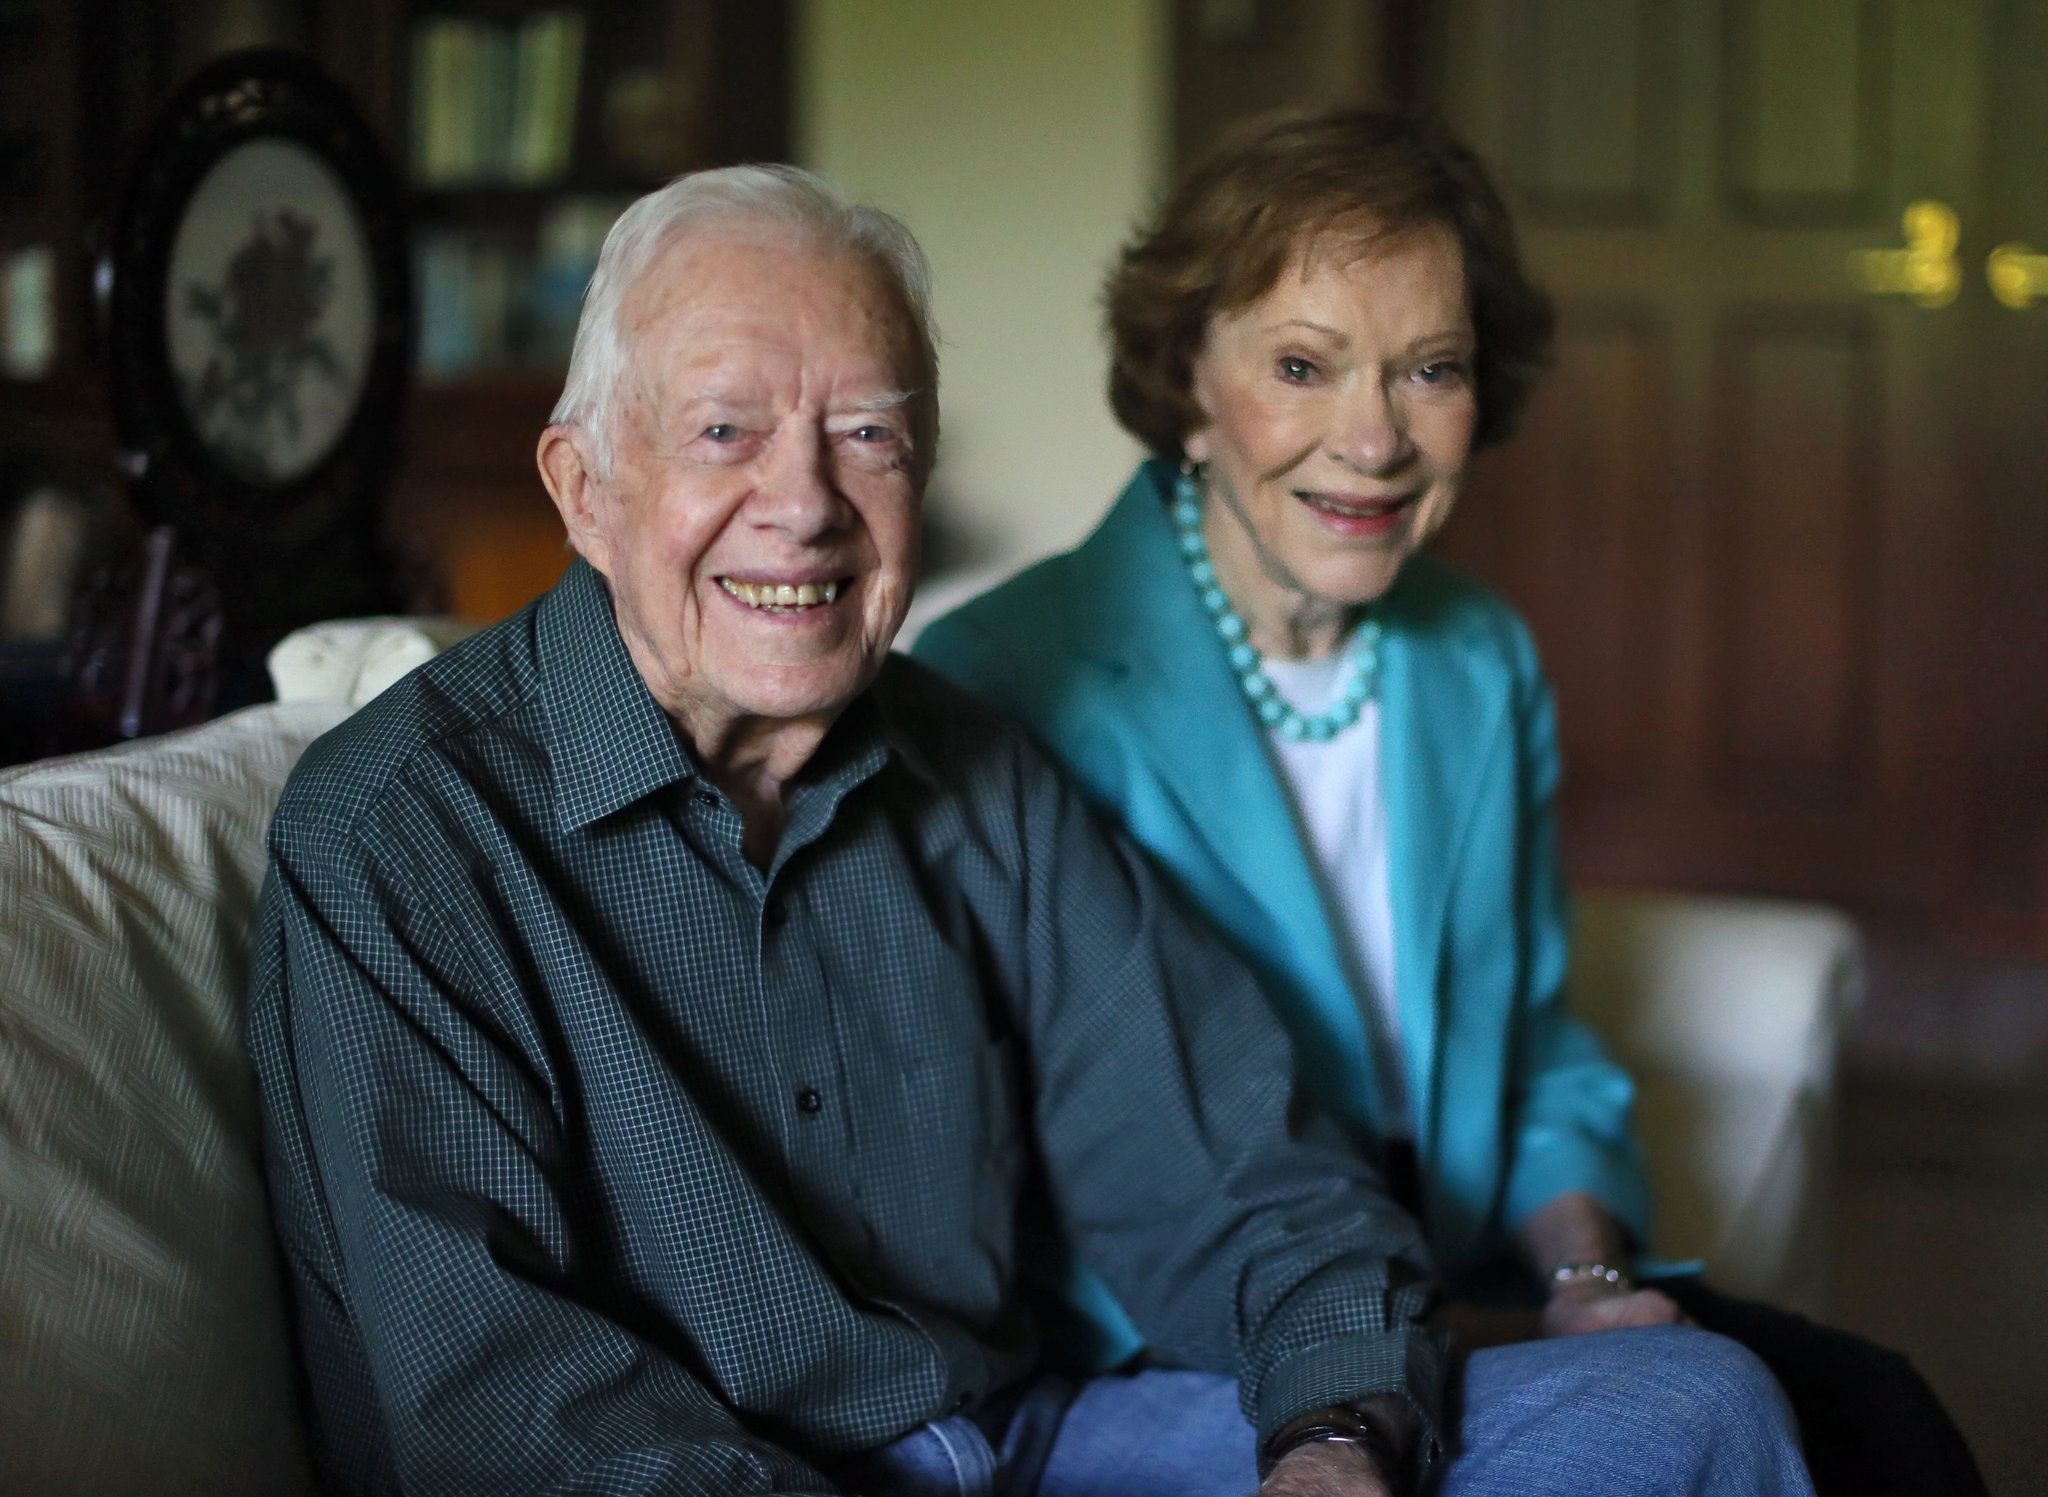 They will celebrate their 70th wedding anniversary July 7. BOB ANDRES / BANDRES@AJC.COM